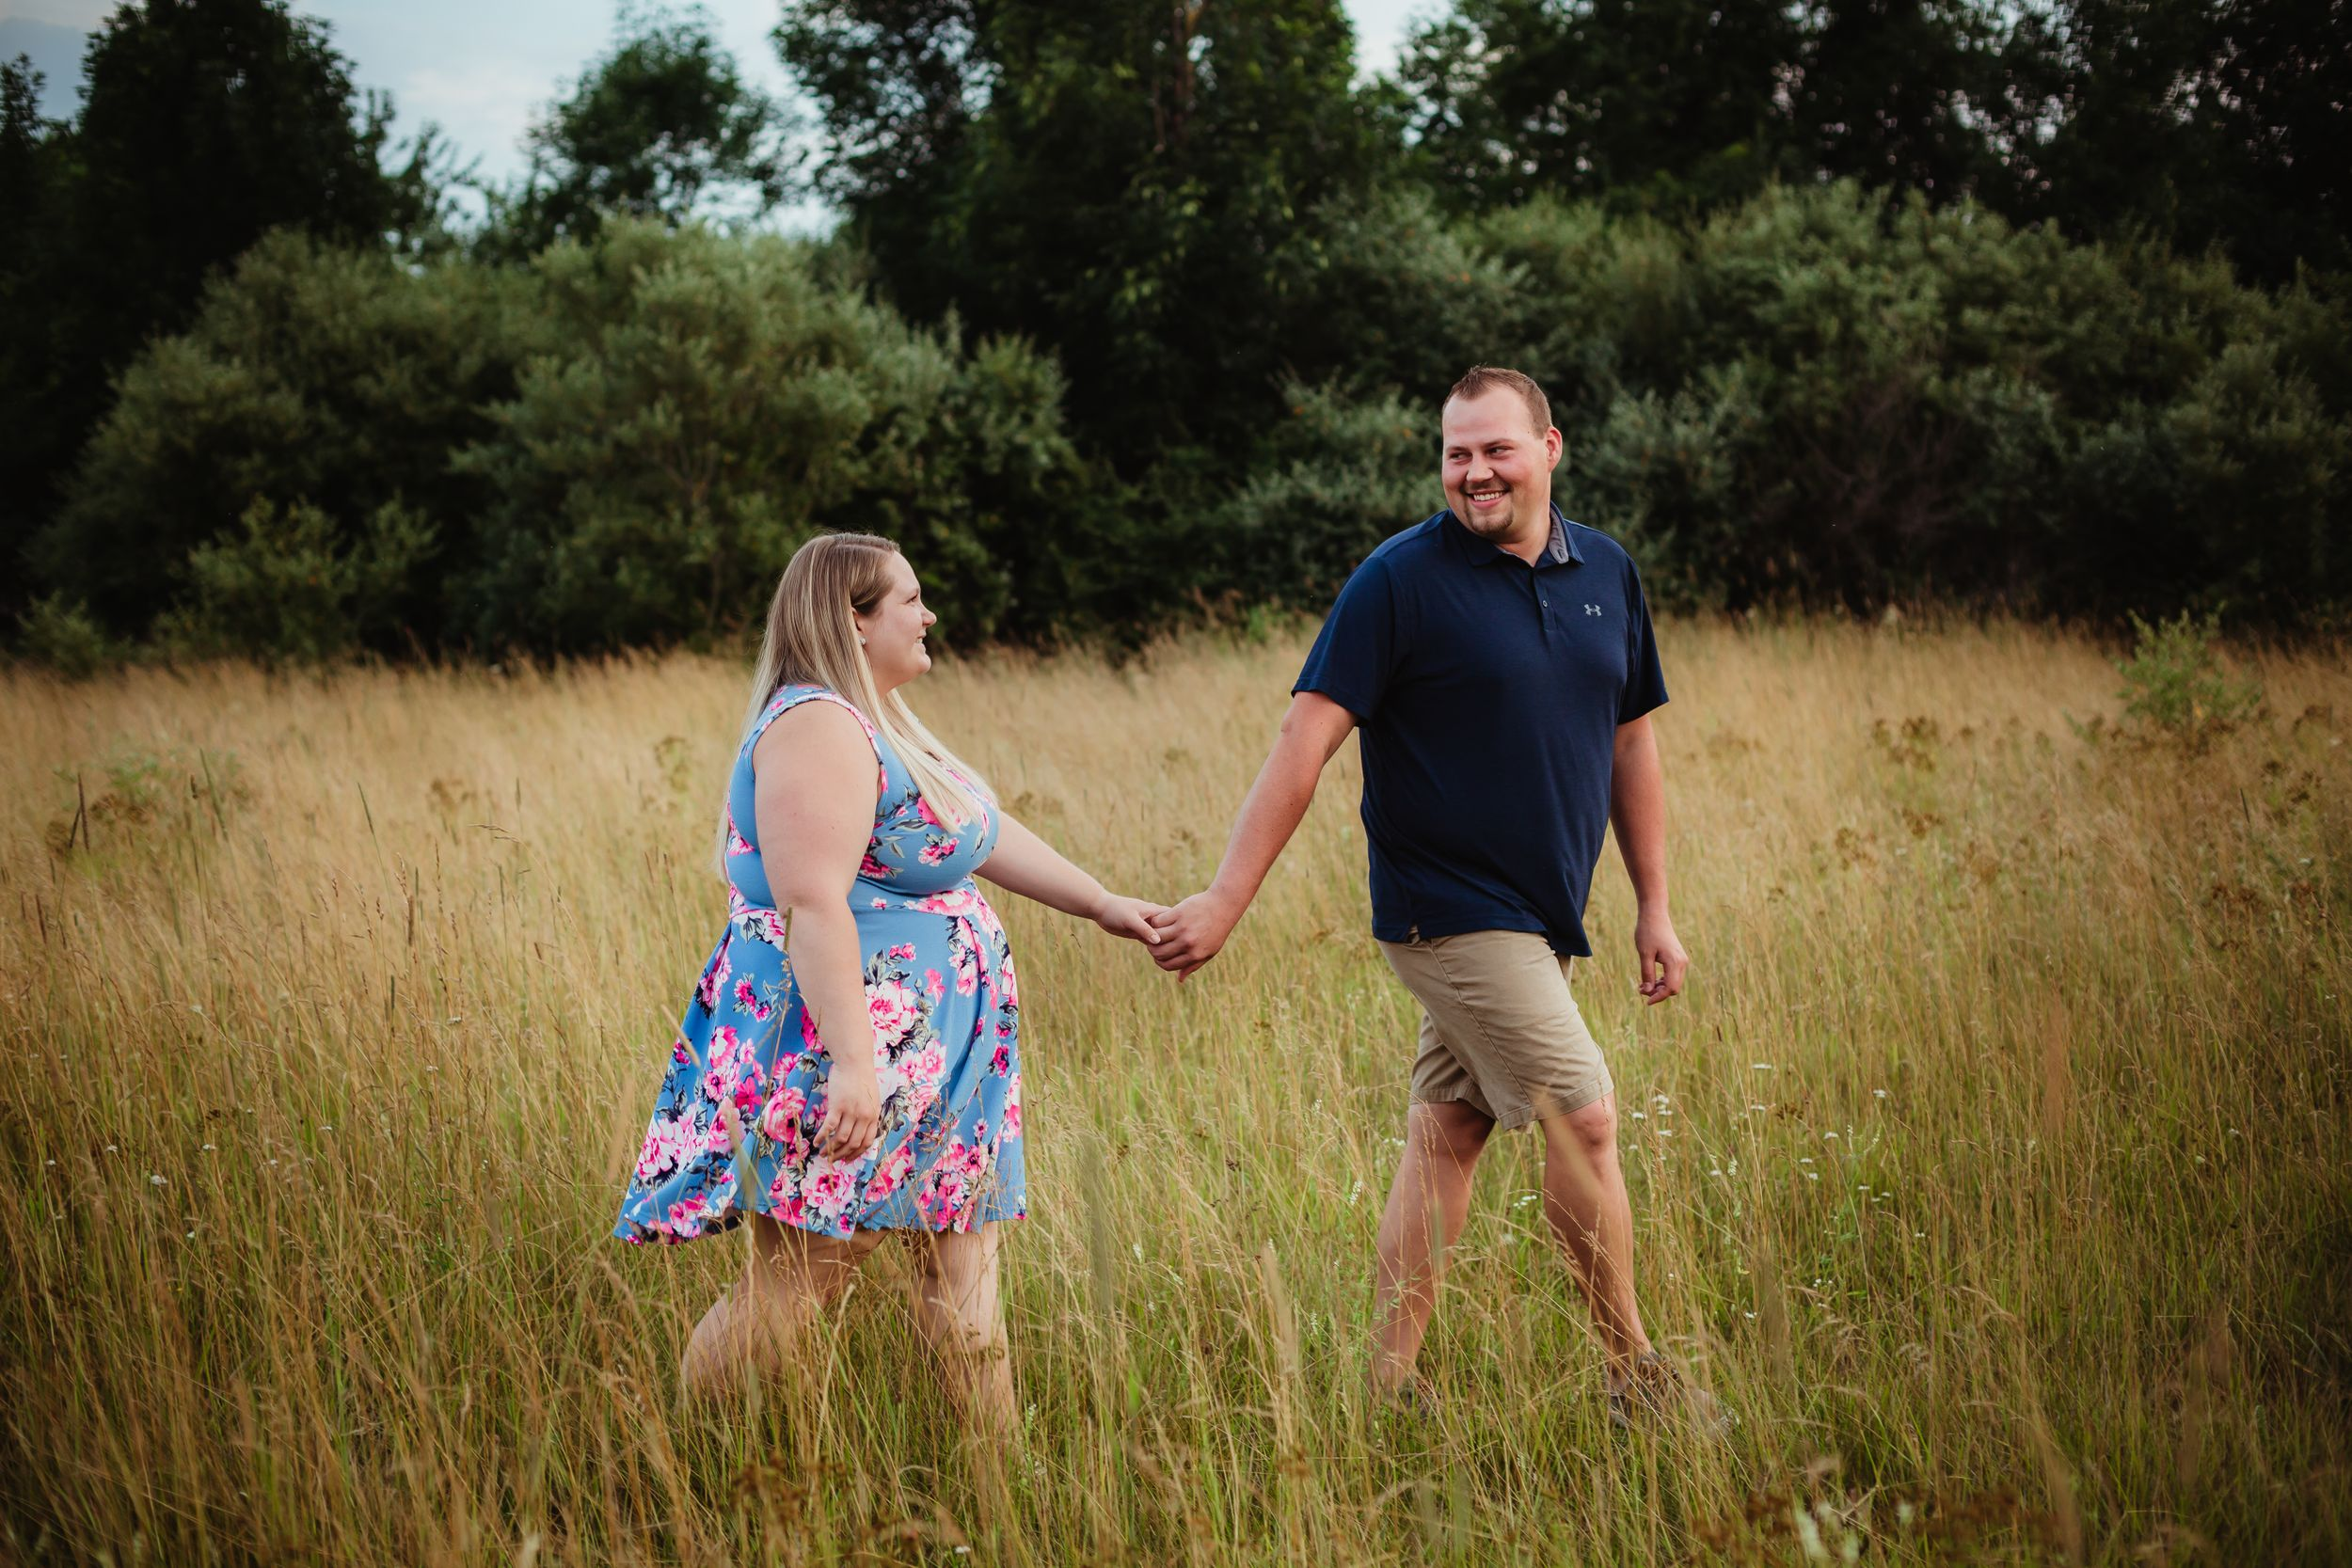 Photo of an engaged couple holding hands walking through a field smiling at each other.